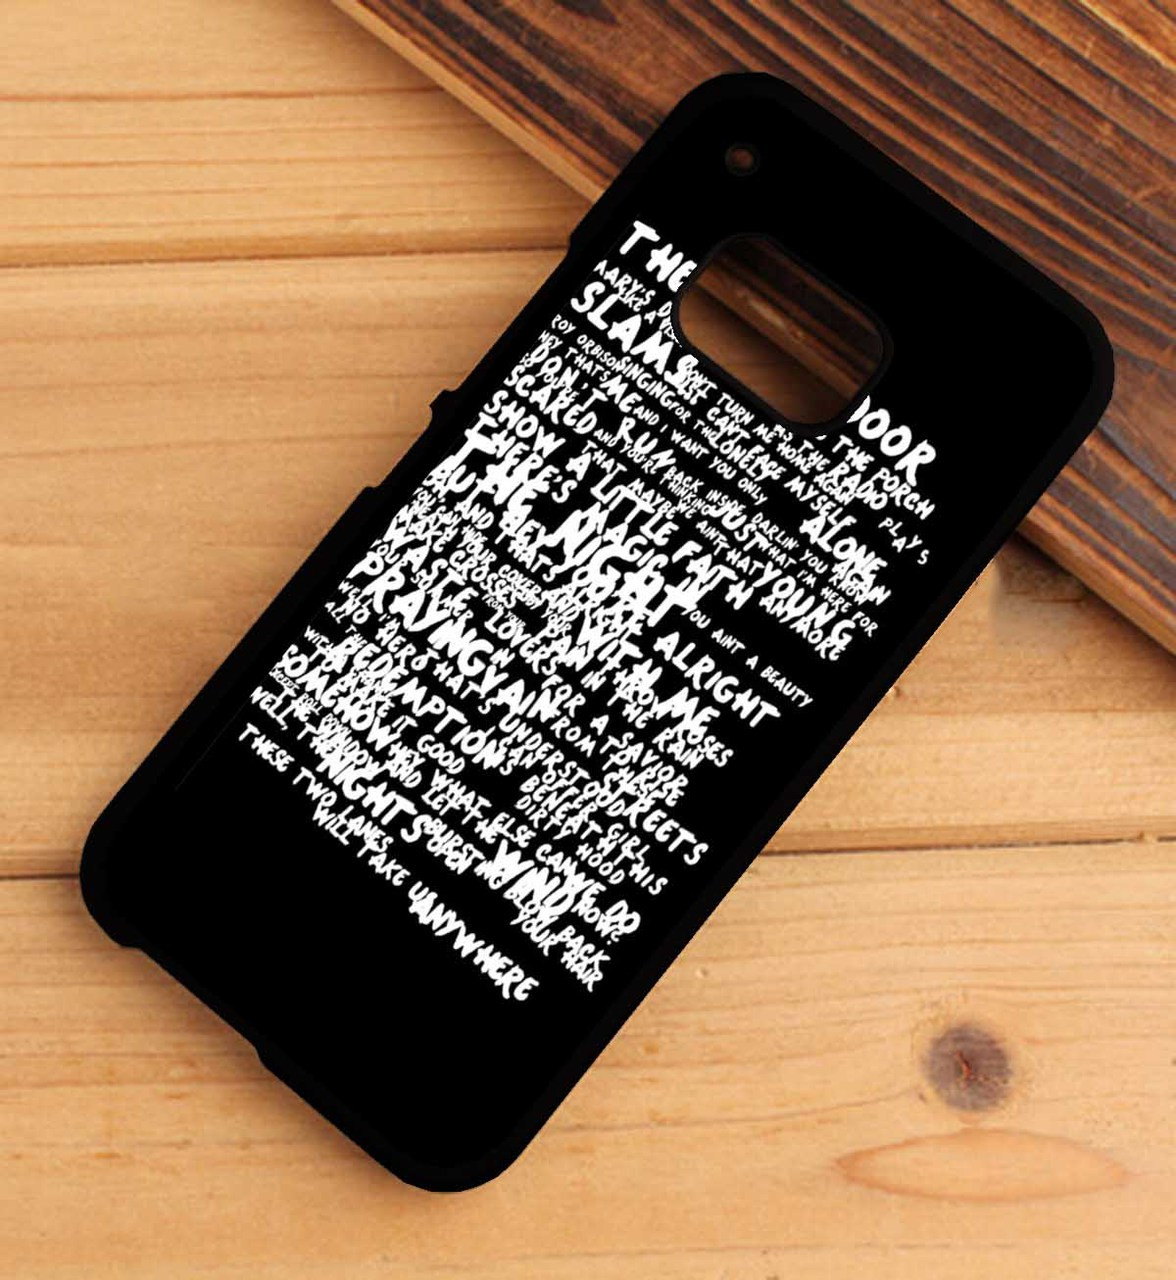 bruce springsteen galaxy iphone case